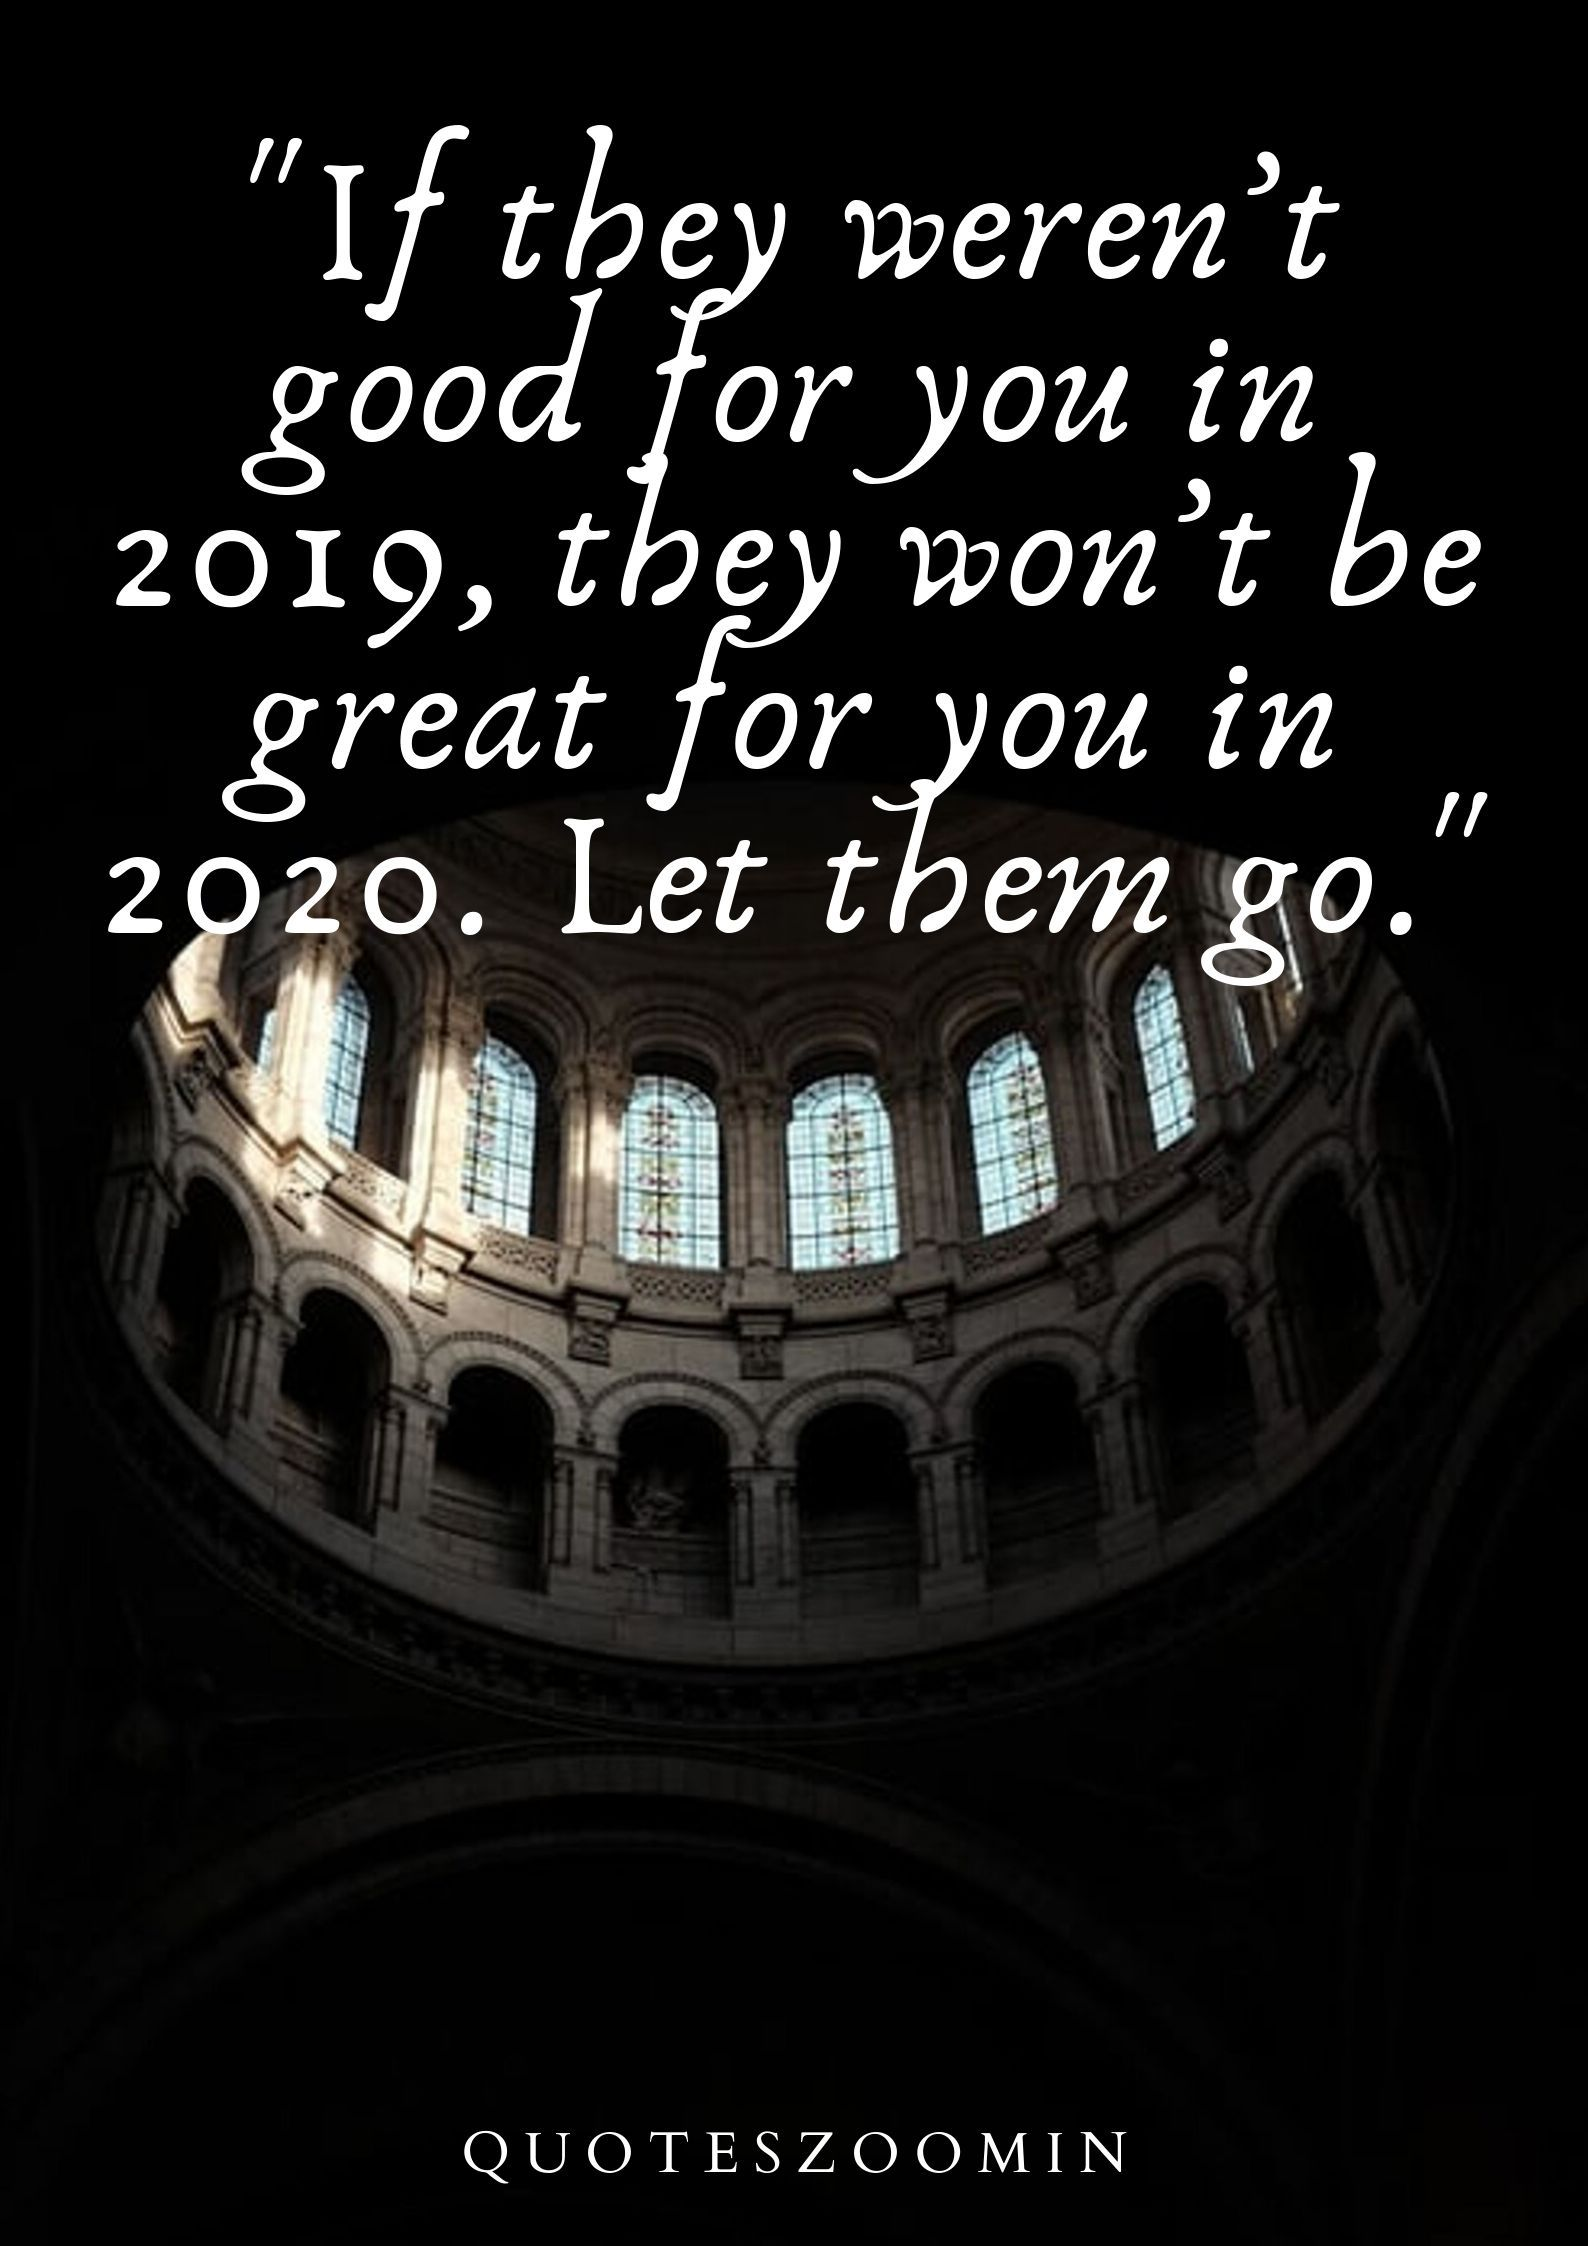 2020 quotes new years, Each passing year sees changes in